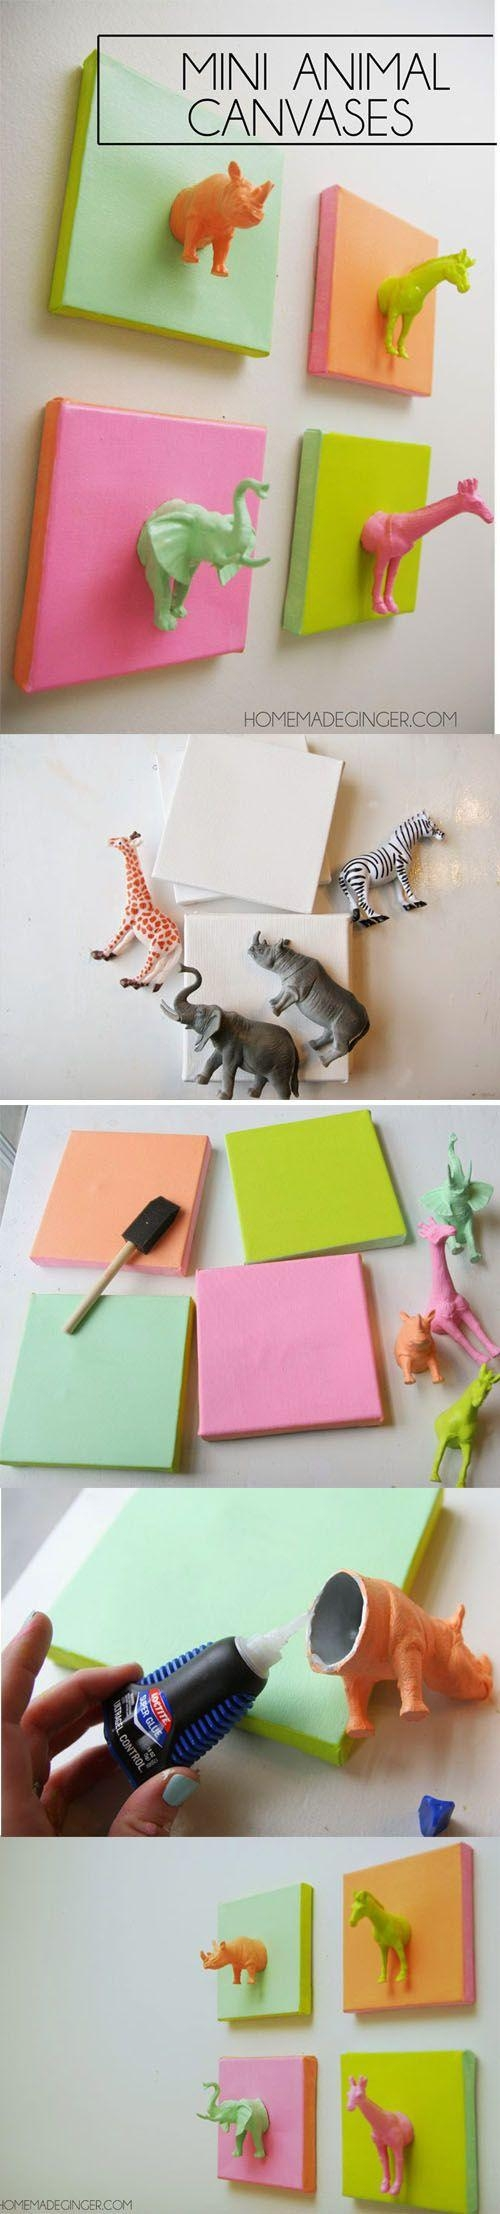 Best 25+ Bedroom Canvas Ideas Only On Pinterest | 1D 2016, Teen With Regard To Diy Pinterest Canvas Art (Image 9 of 20)